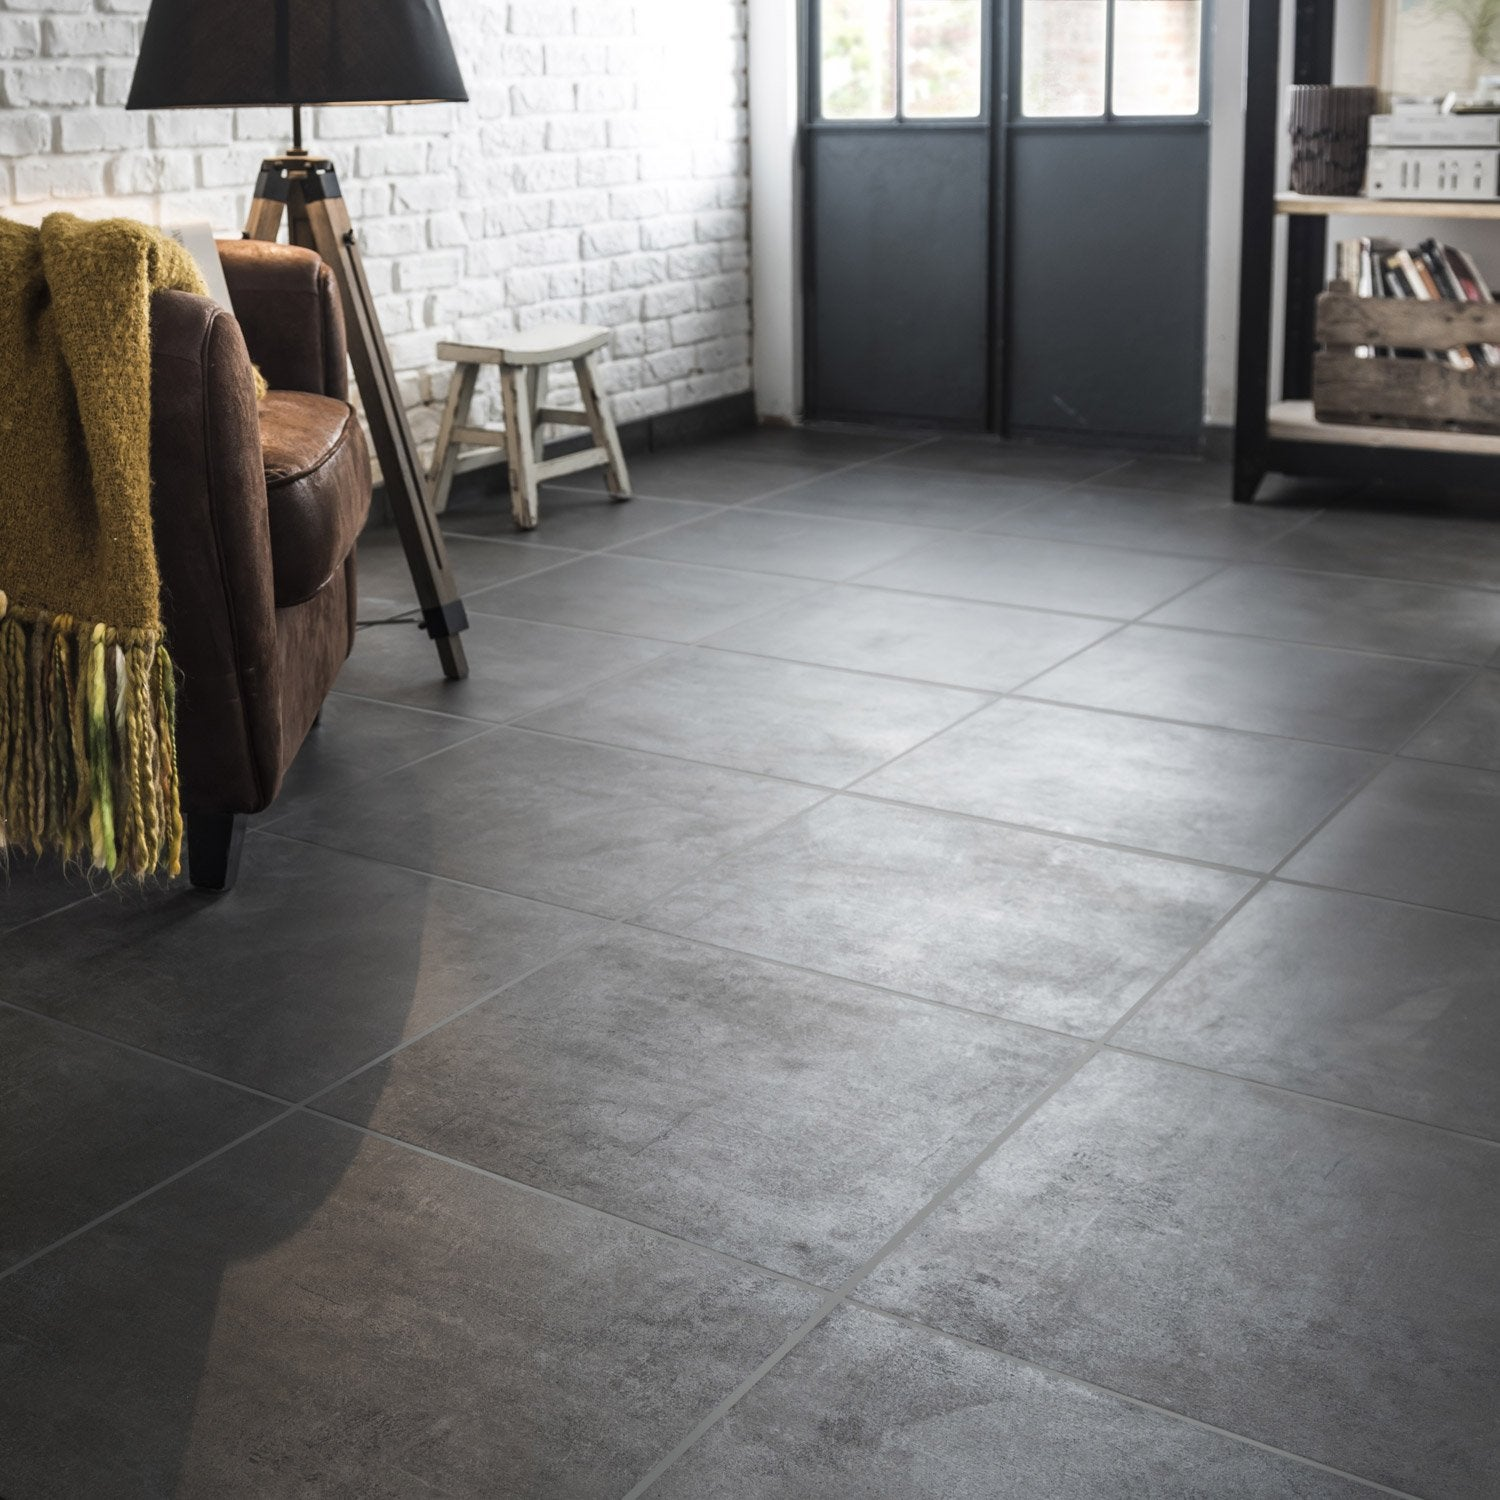 Carrelage sol anthracite effet b ton alma x cm for Carrelage gris anthracite